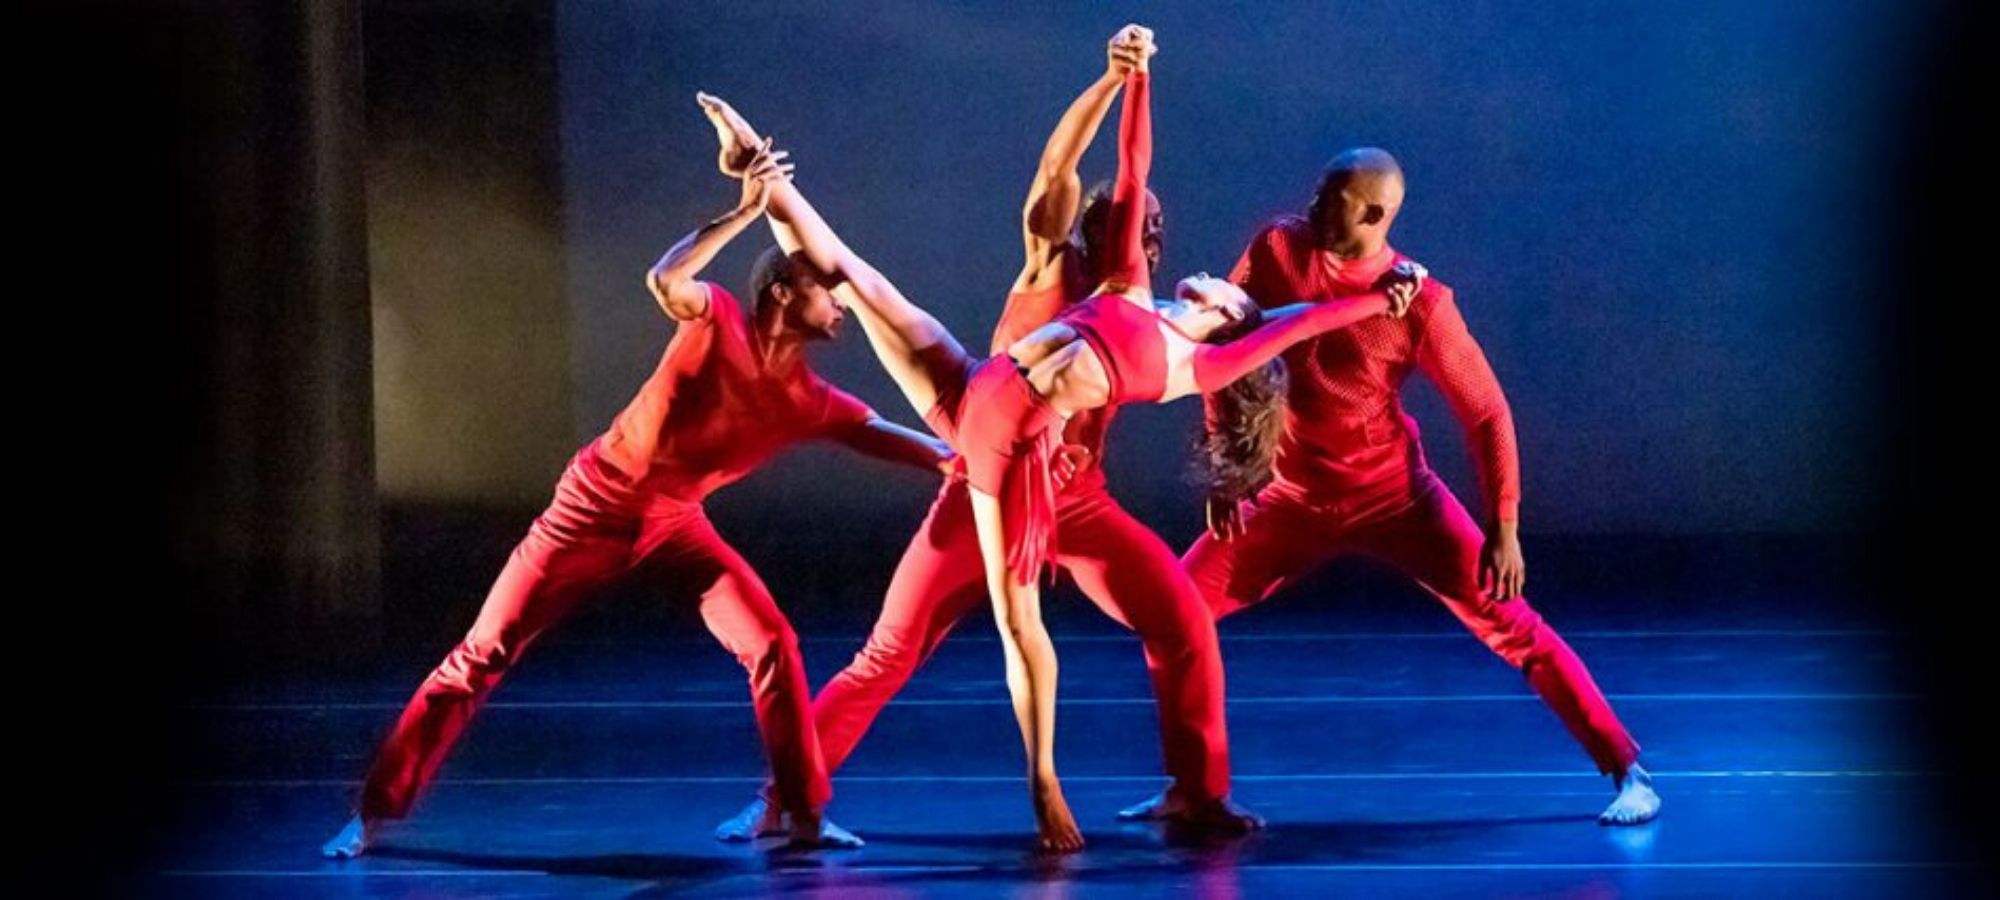 A female dancer in red leans in to a standing split supported by three men in red